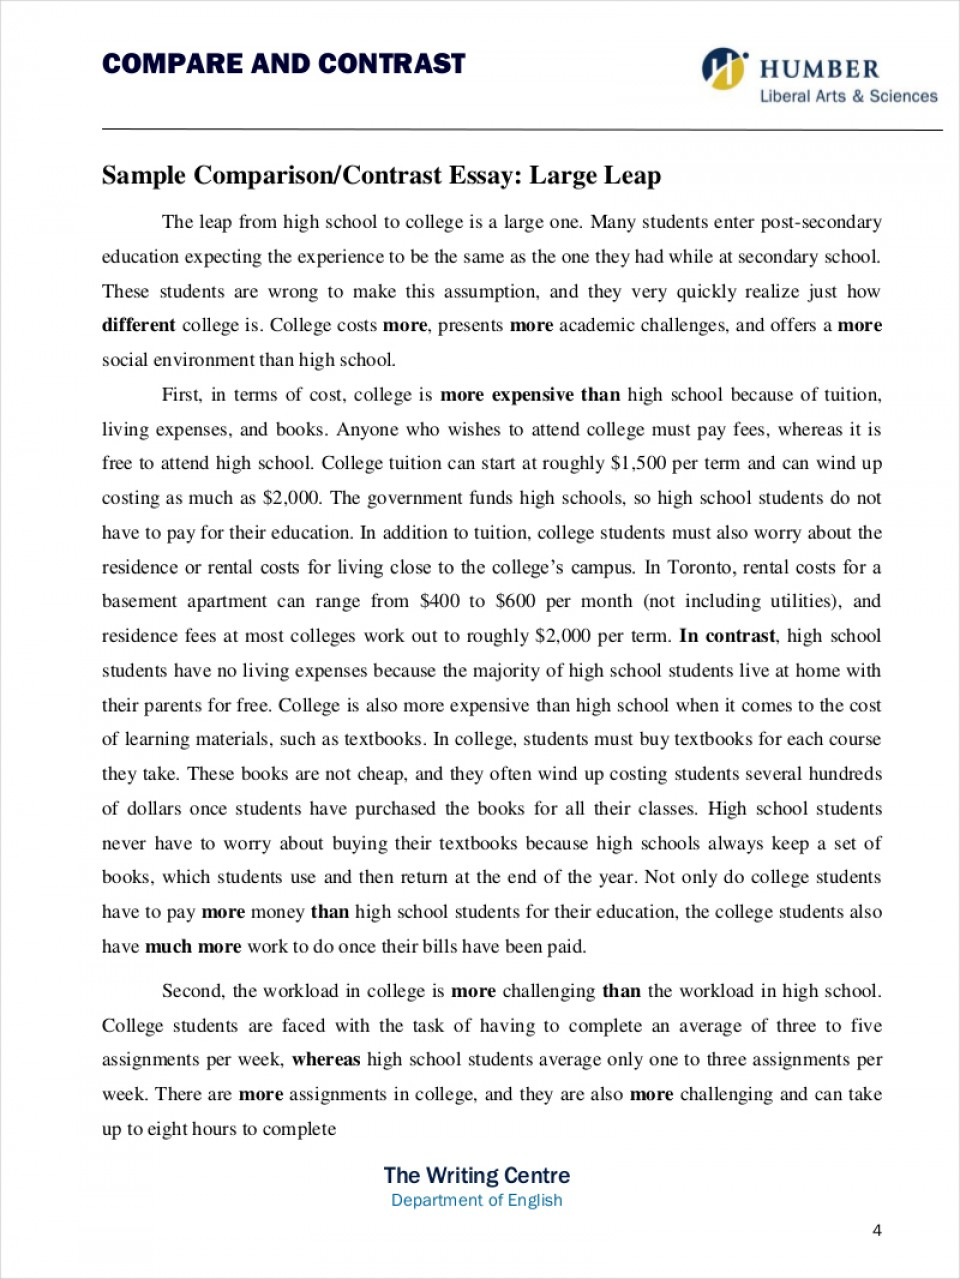 014 How To Write Compare And Contrast Essay Example Comparative Samples Free Pdf Format Download Throughout Examples Comparison Thesis Coles Thecolossus Co Within Ex Outstanding A Outline Ppt Middle School 960